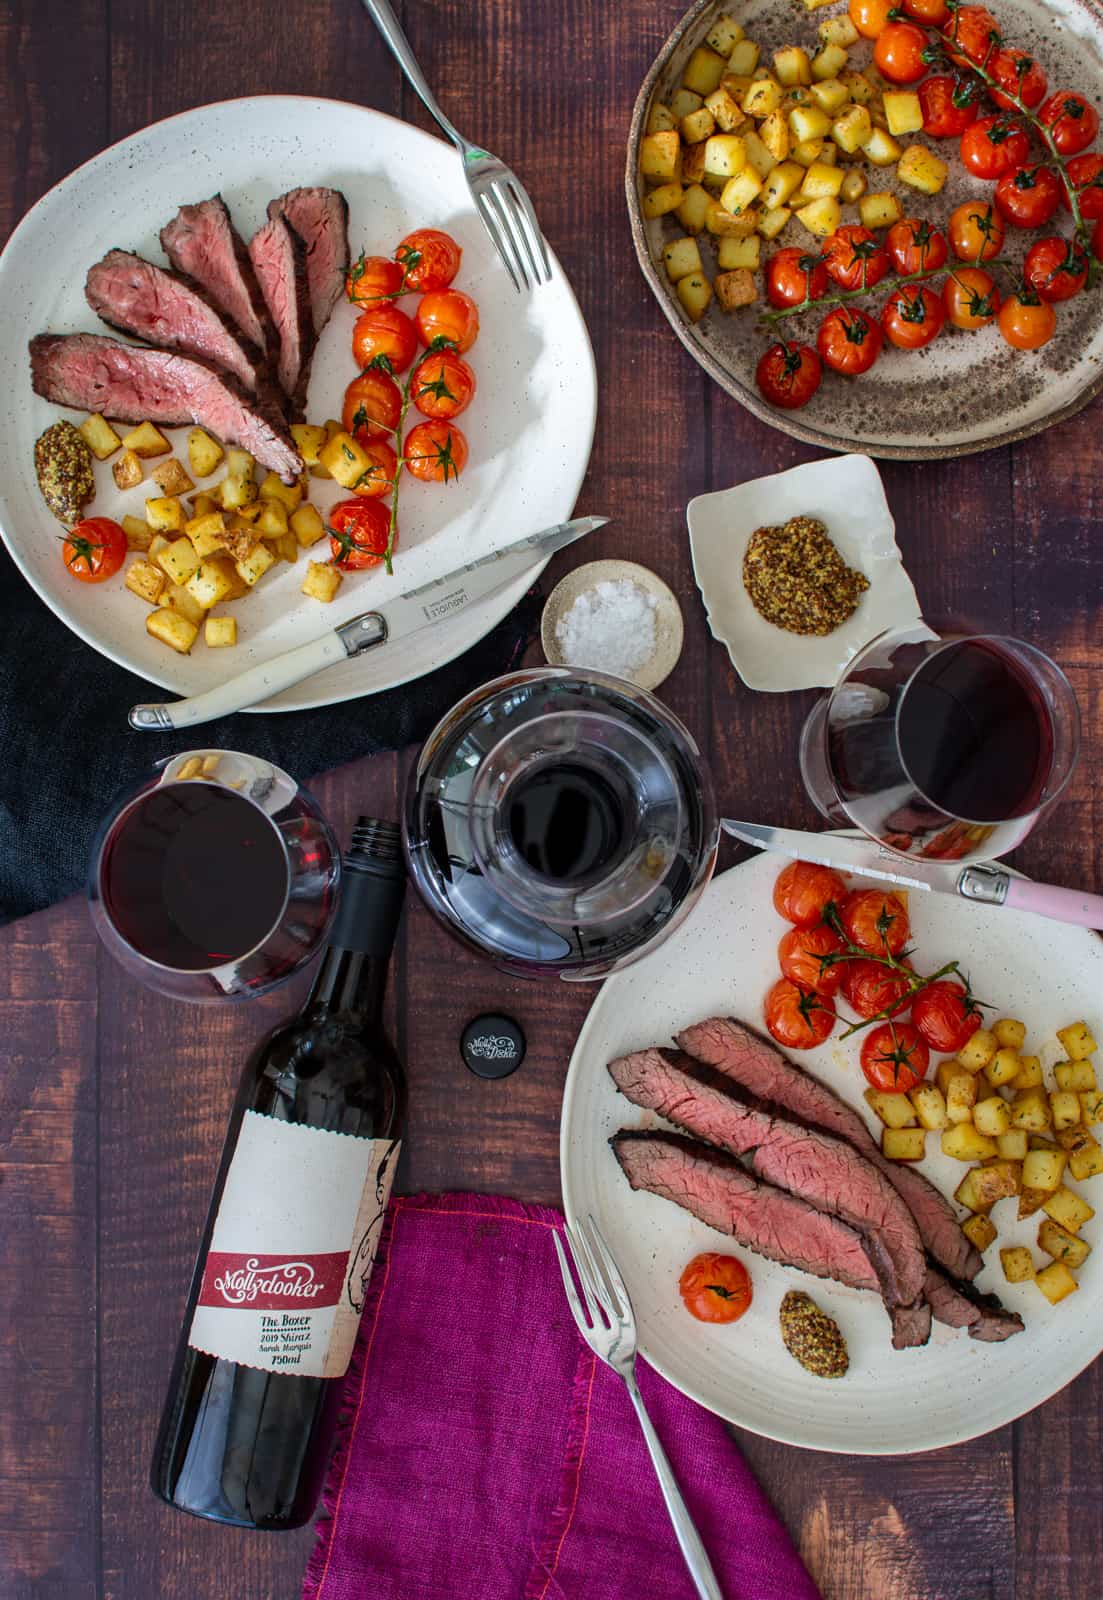 Birds eye view of bavette steak, potatoes & tomatoes on a plate with mollydooker red wine on table